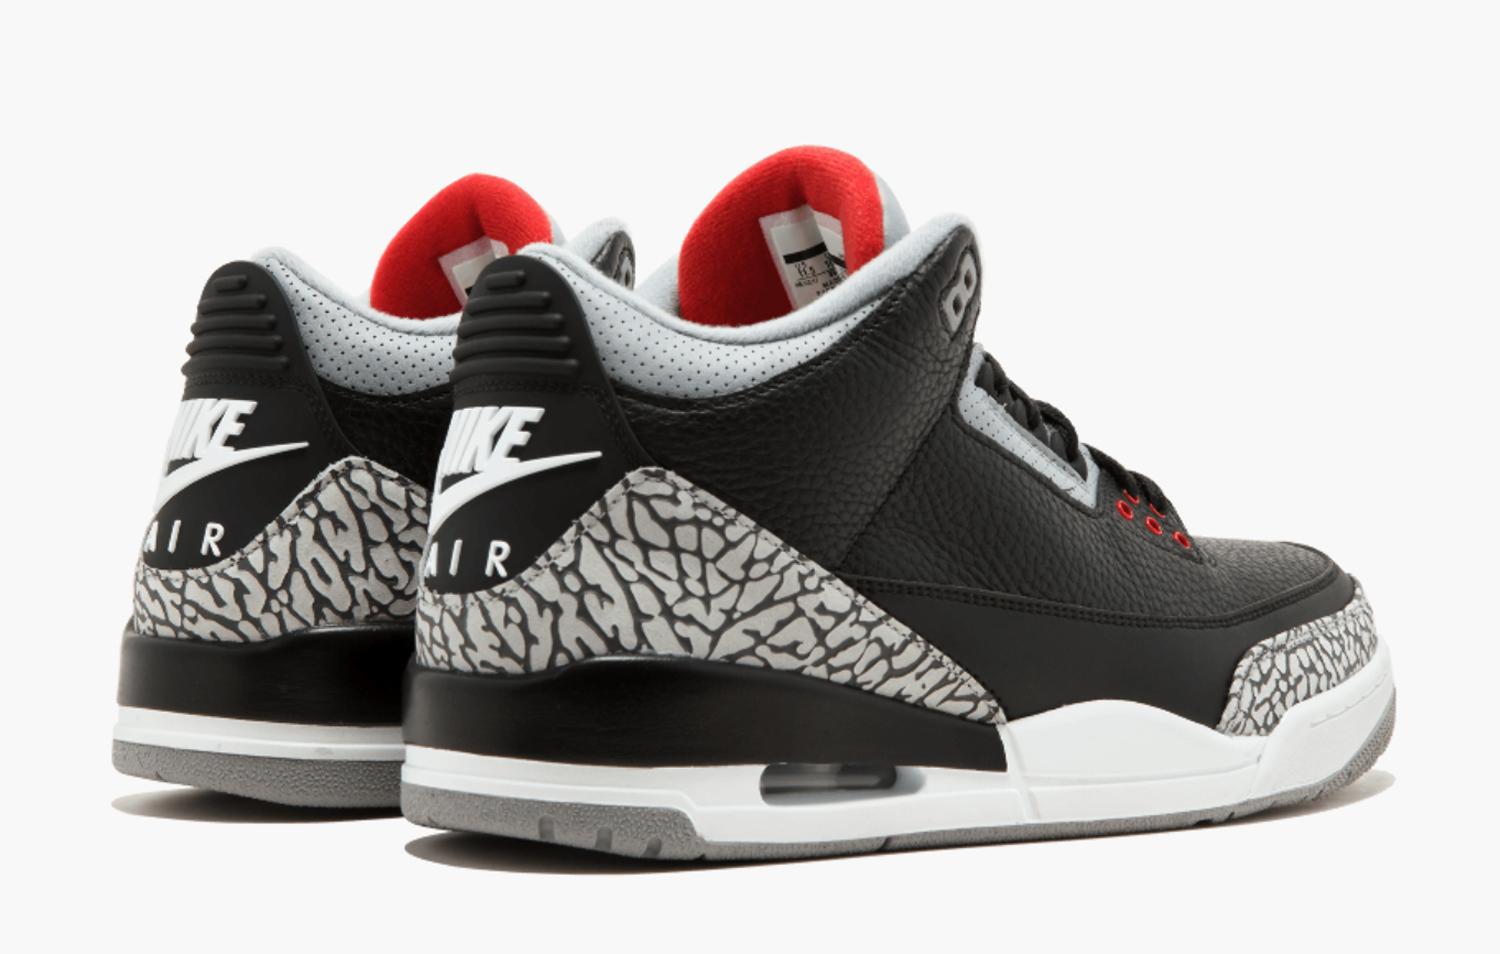 on sale 92735 7e52e A First Look at the Air Jordan 3 'Black Cement' Retro for ...